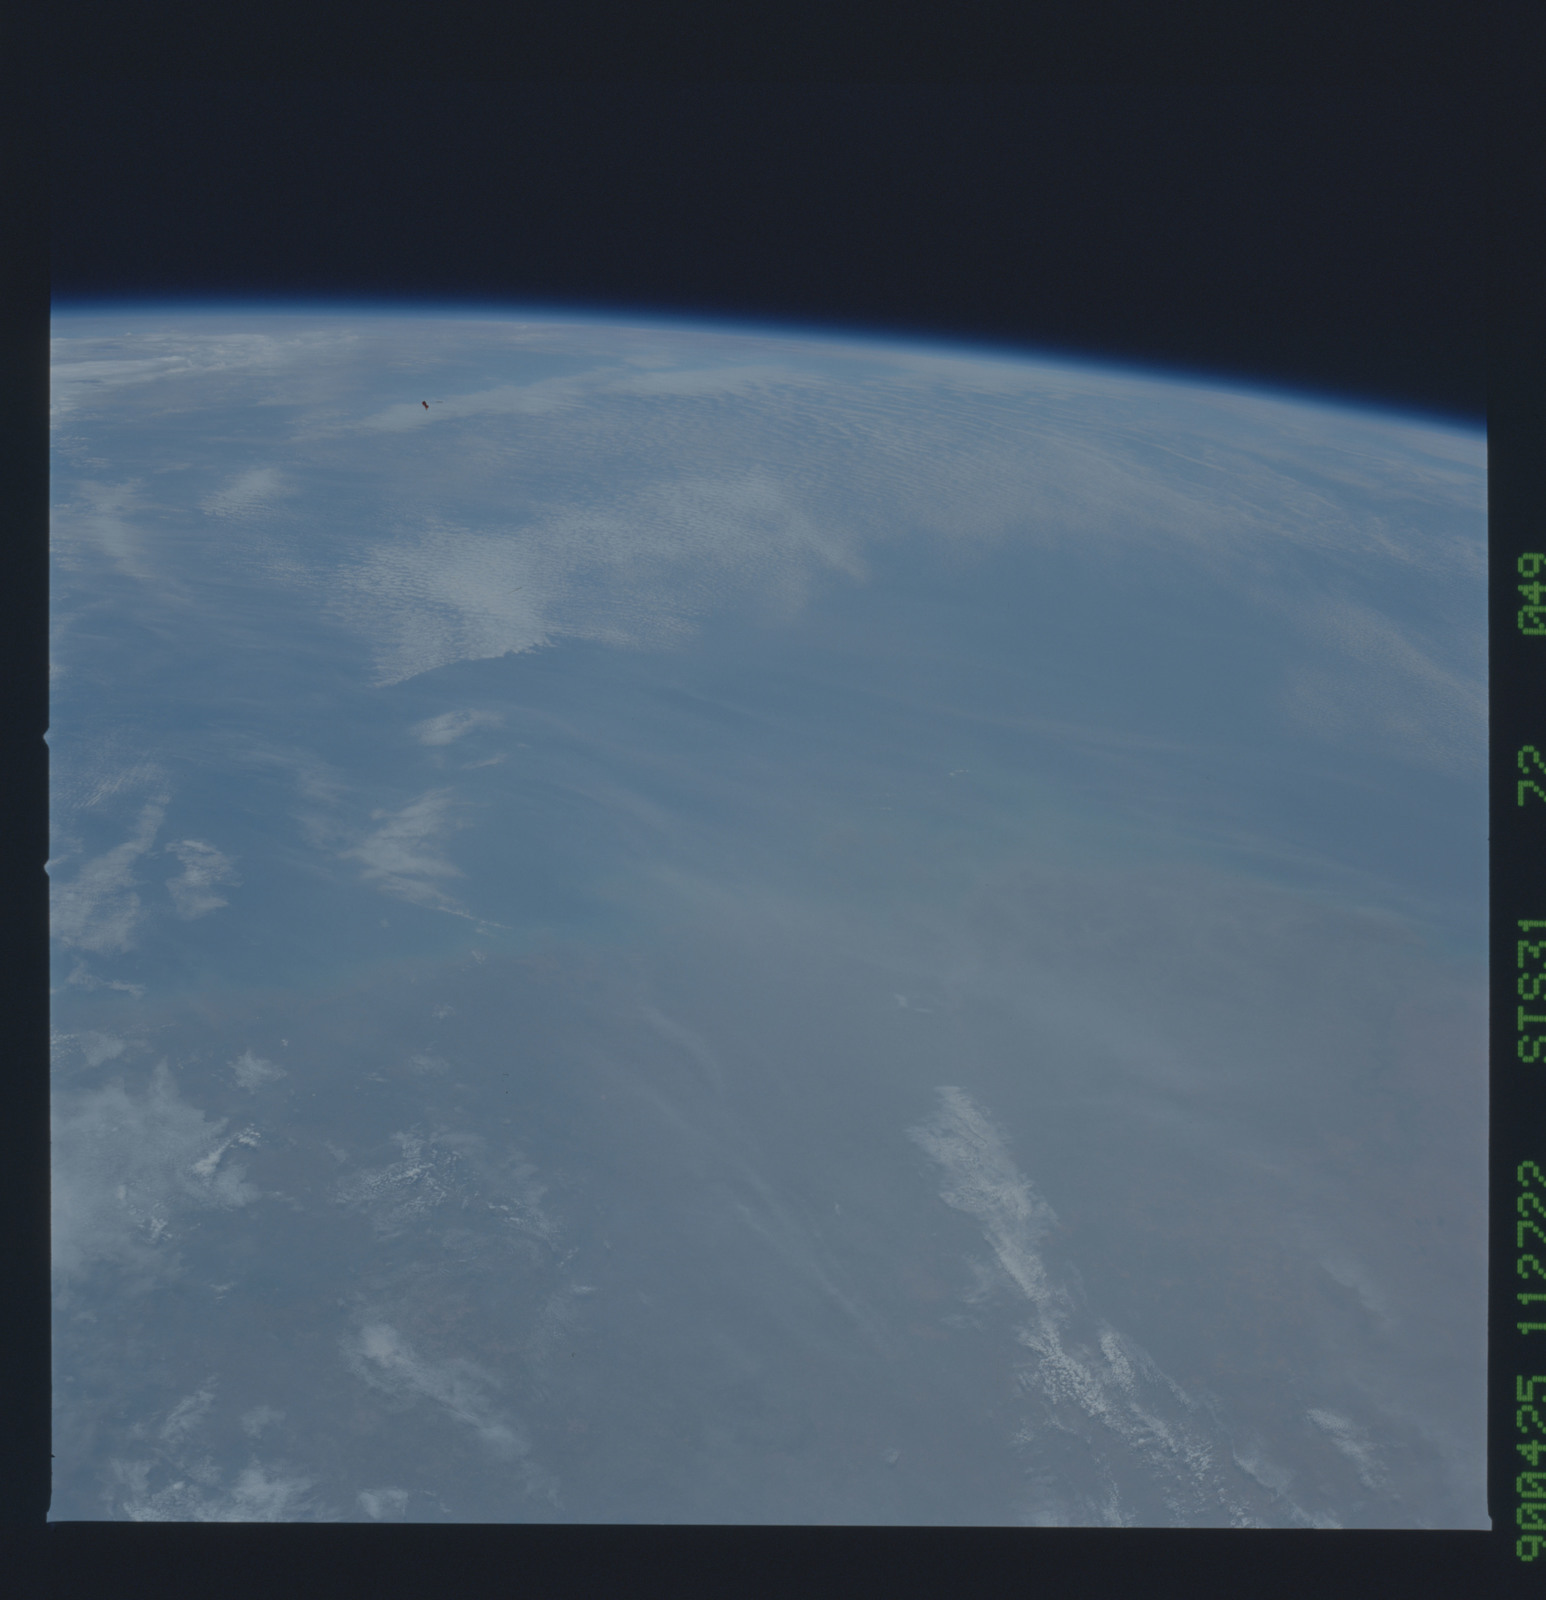 S31-72-049 - STS-031 - STS-31 earth observations